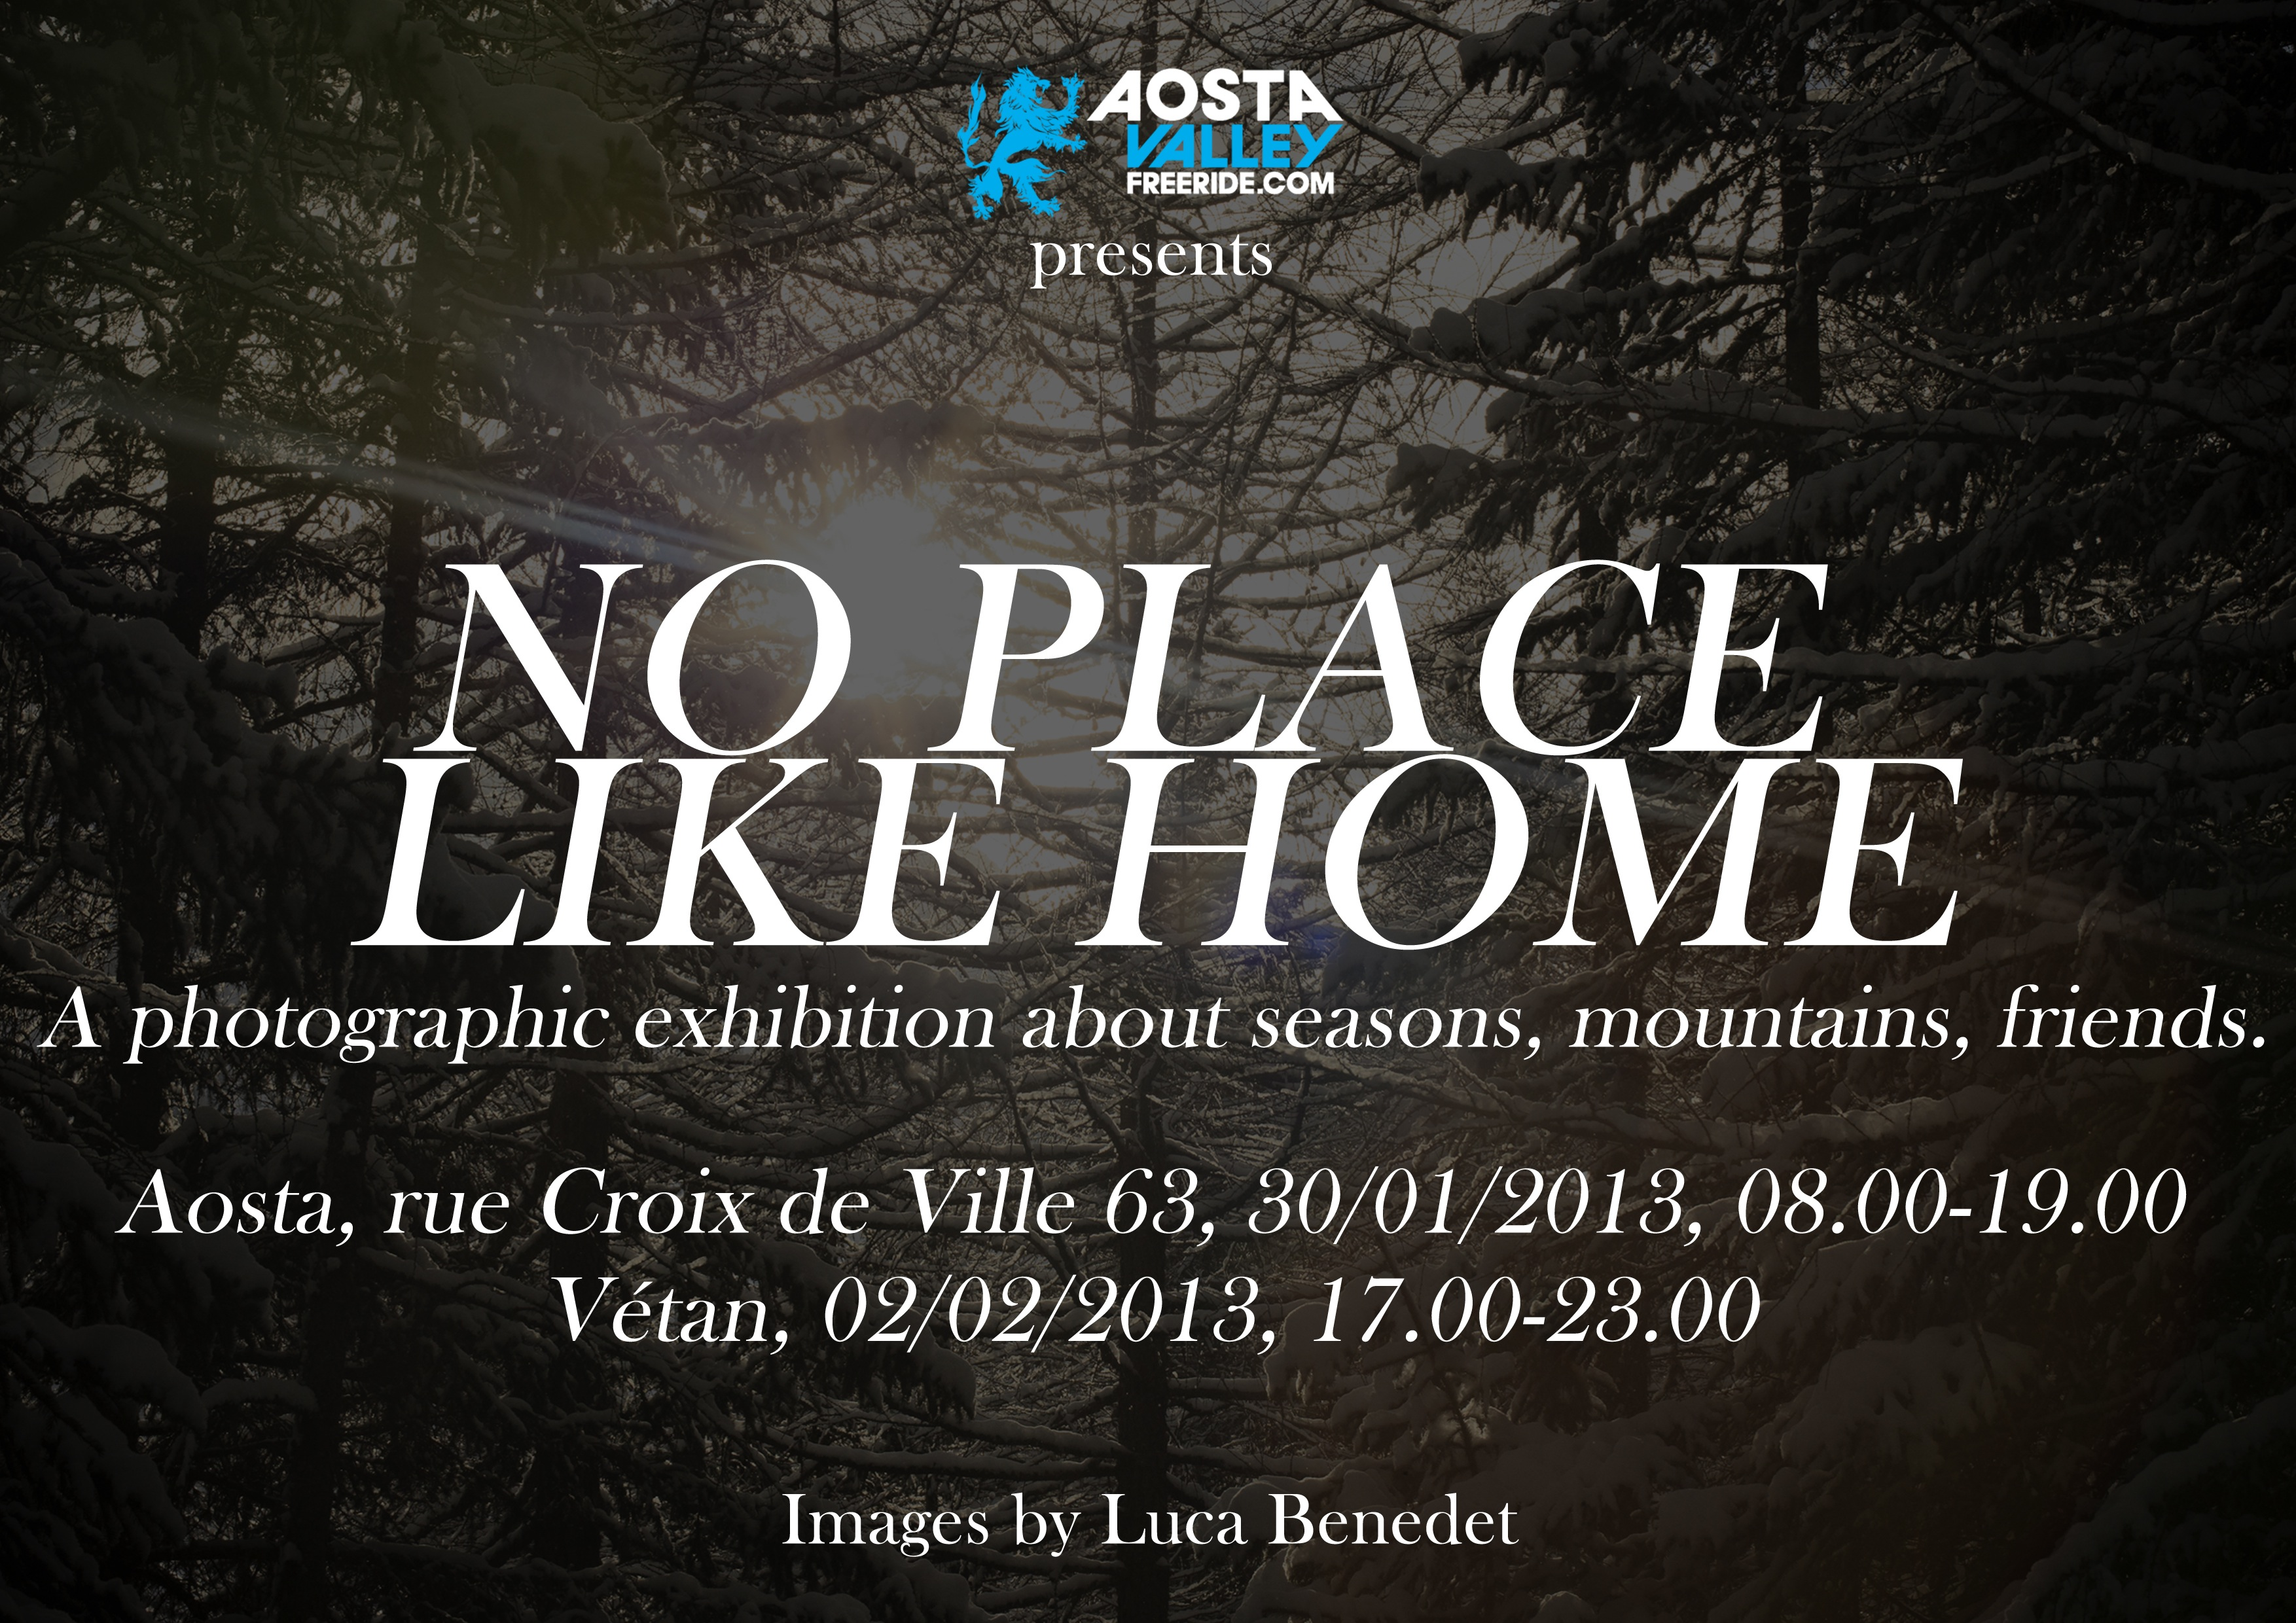 AostaValleyFreeride presents No Place Like Home